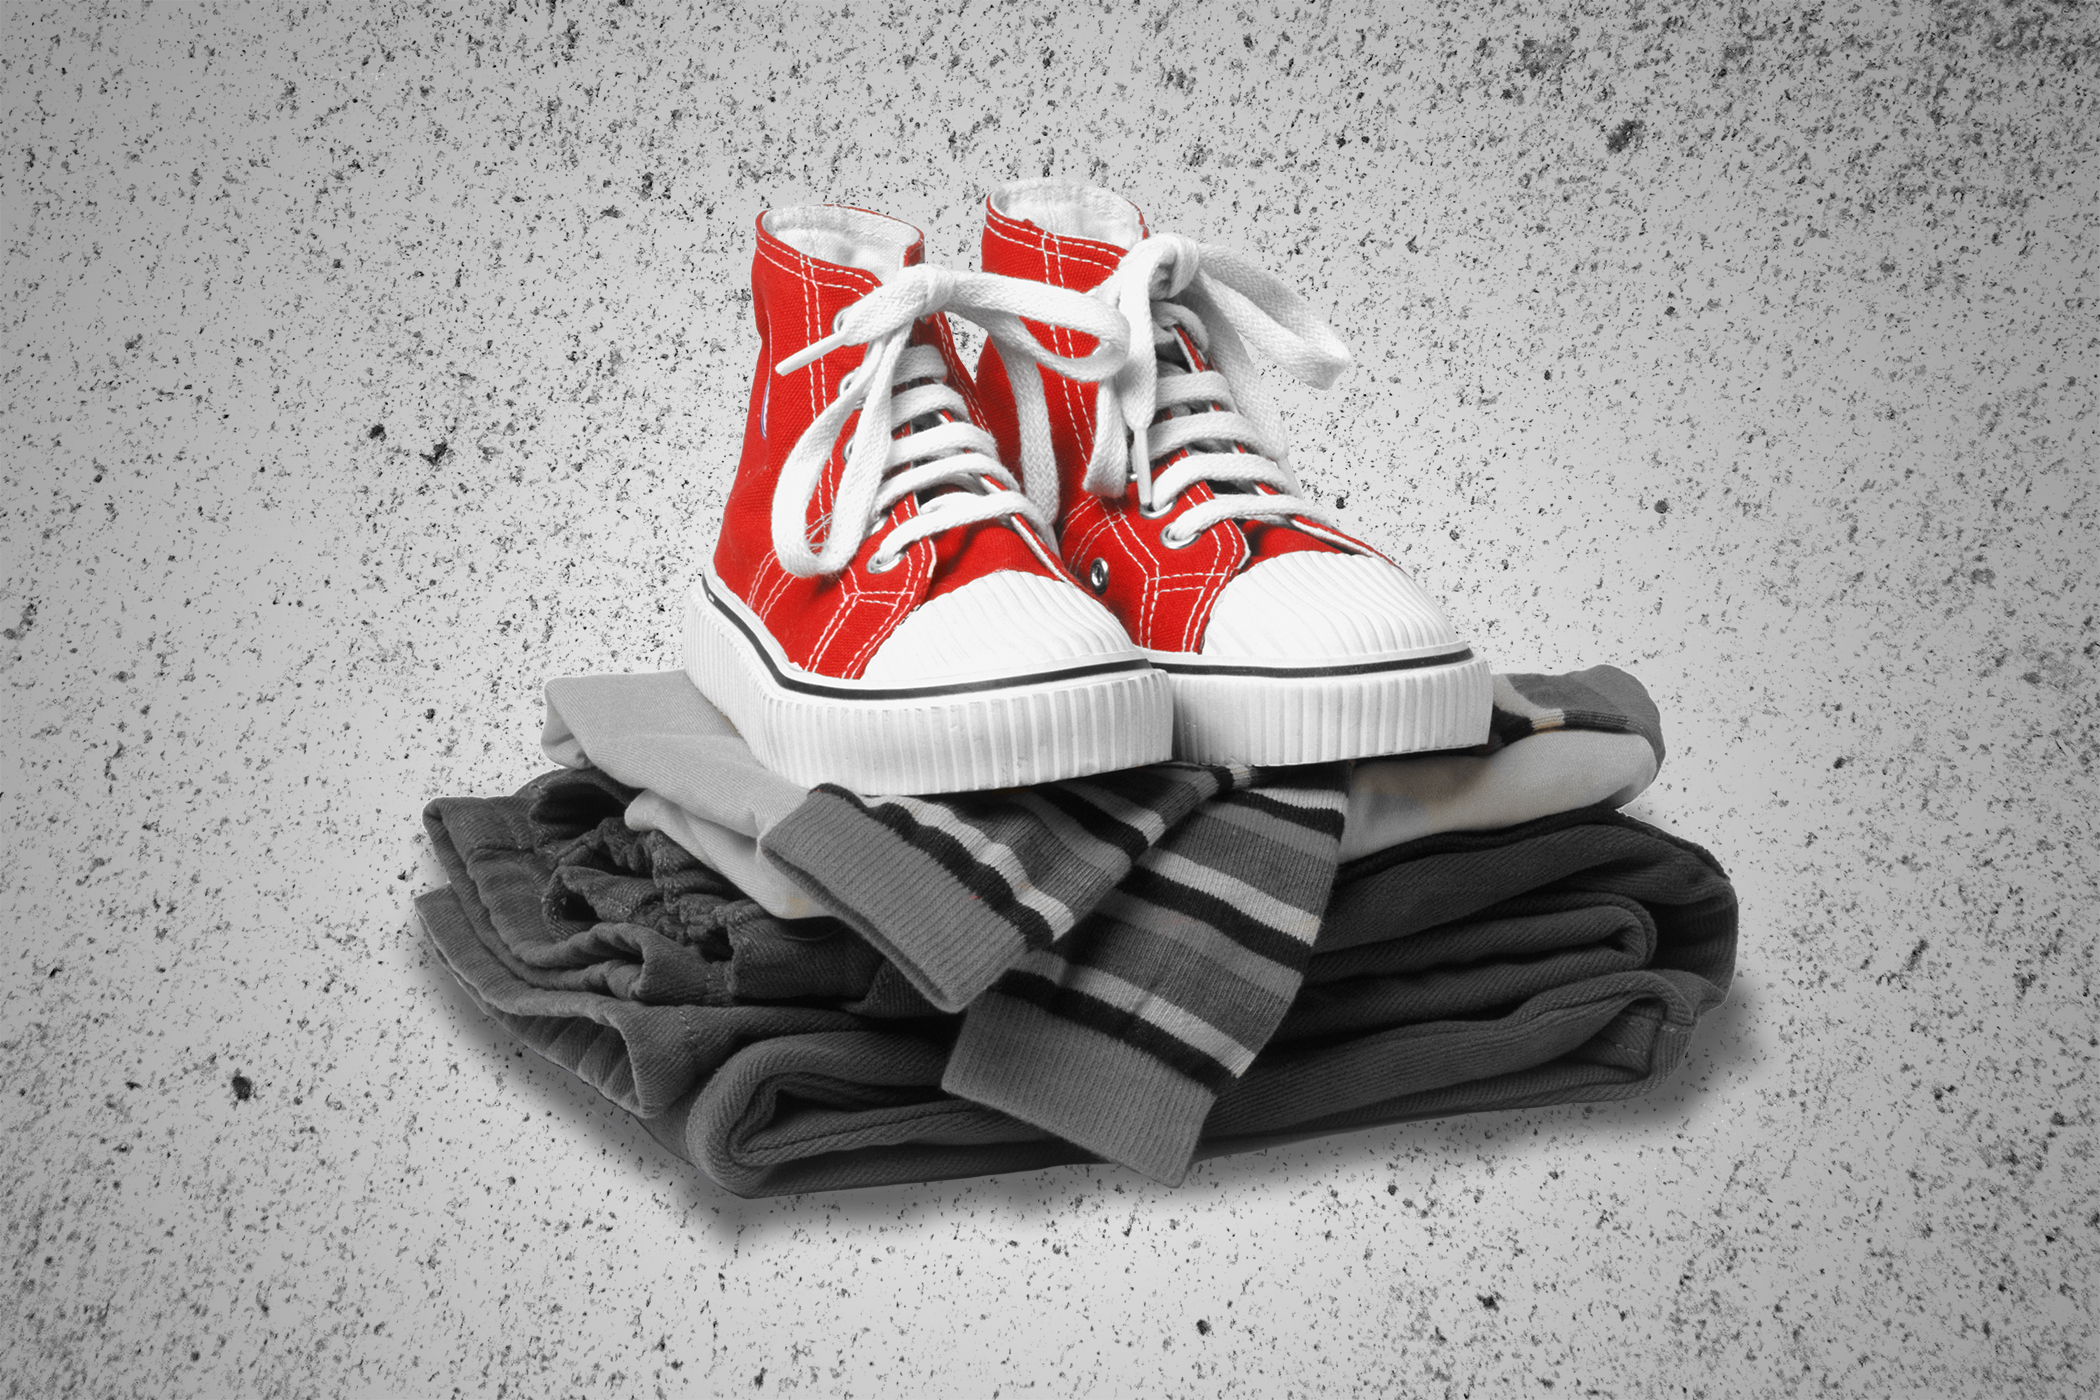 clothing with Converse sneakers